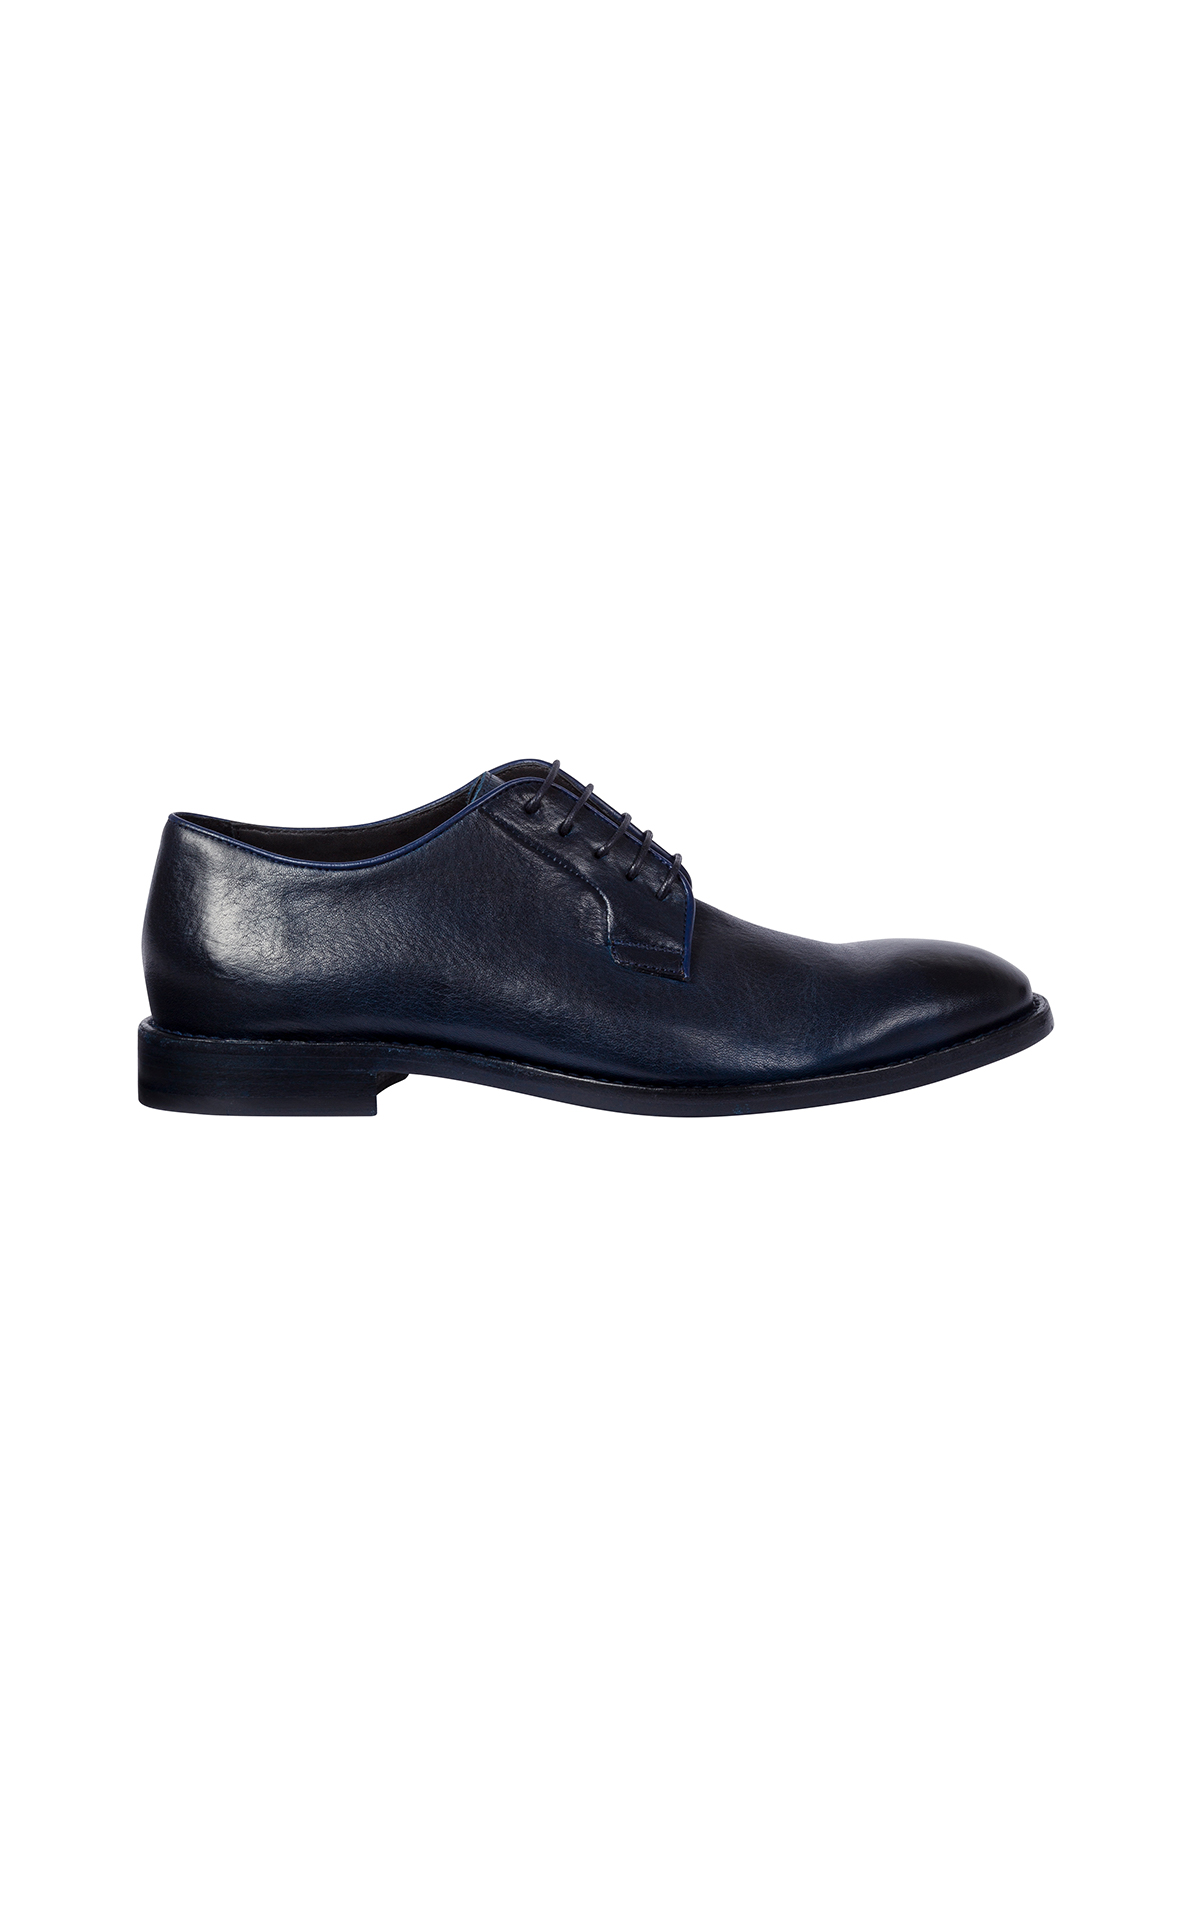 Paul Smith Men's navy shoes at The Bicester Village Shopping Collection